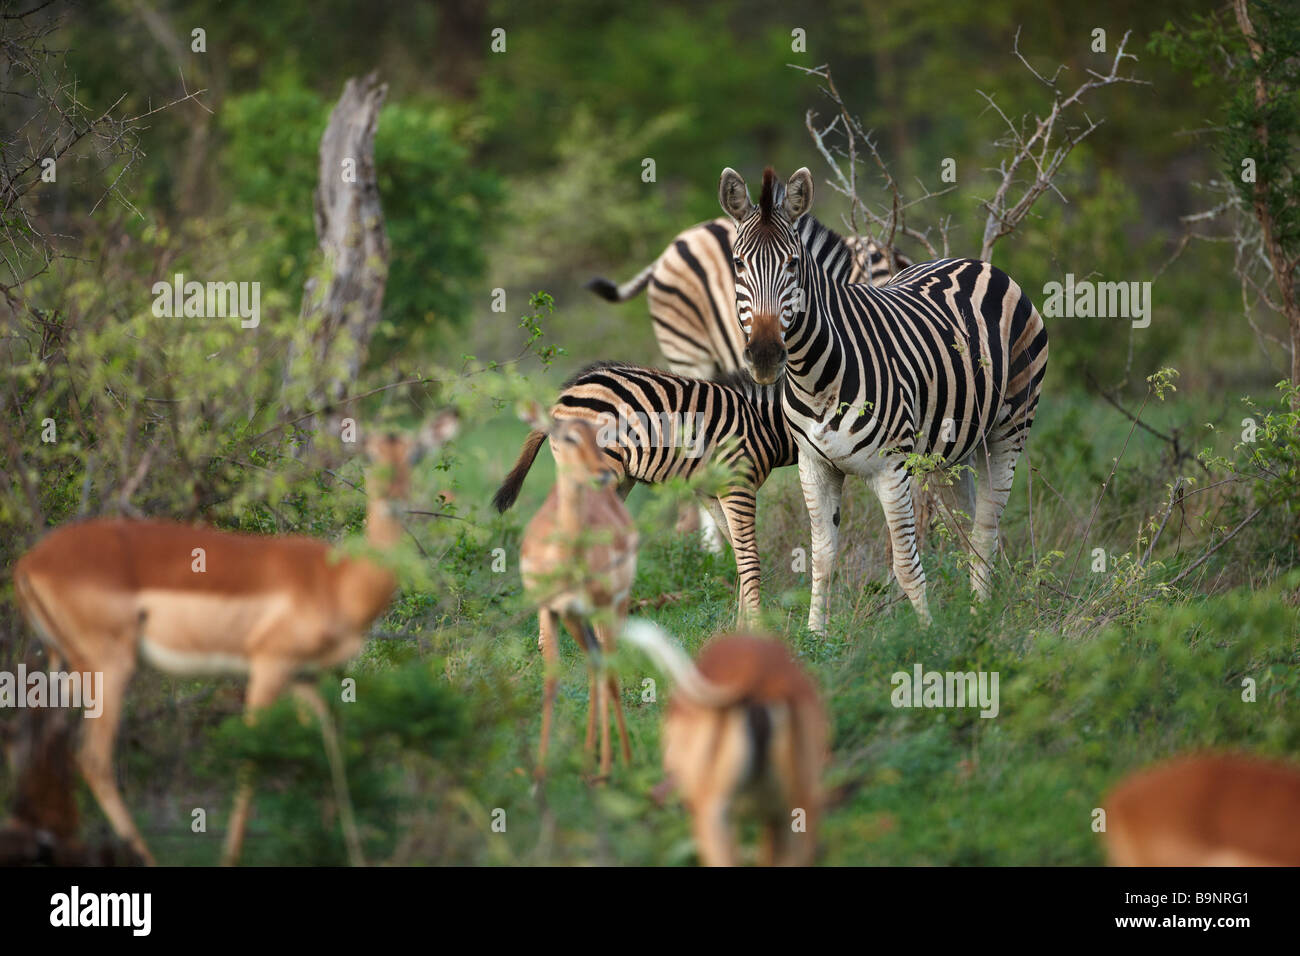 impala and zebra in the bush, Kruger National Park, South Africa Stock Photo